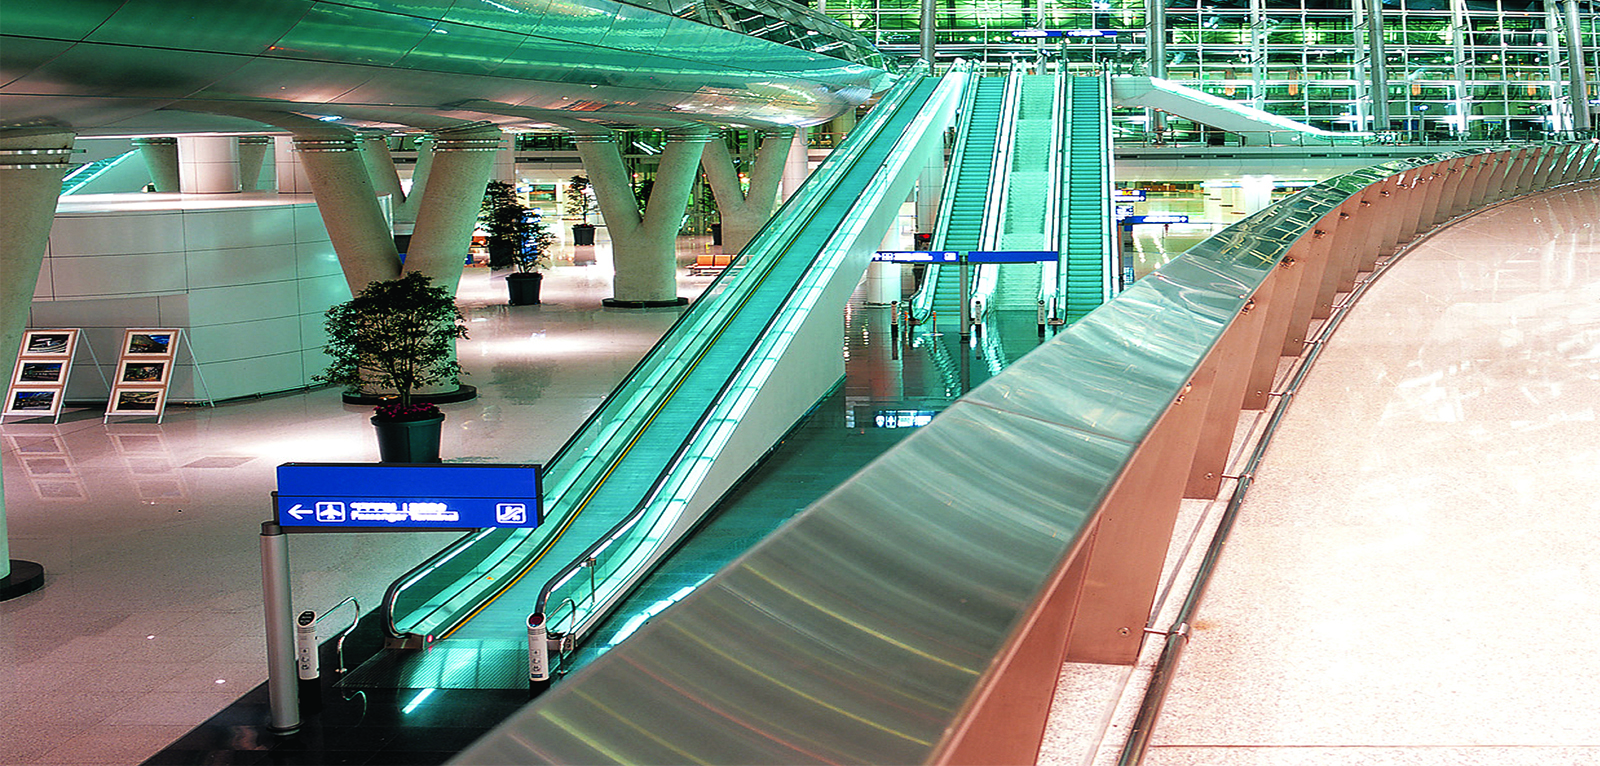 Escalators/Conveyors